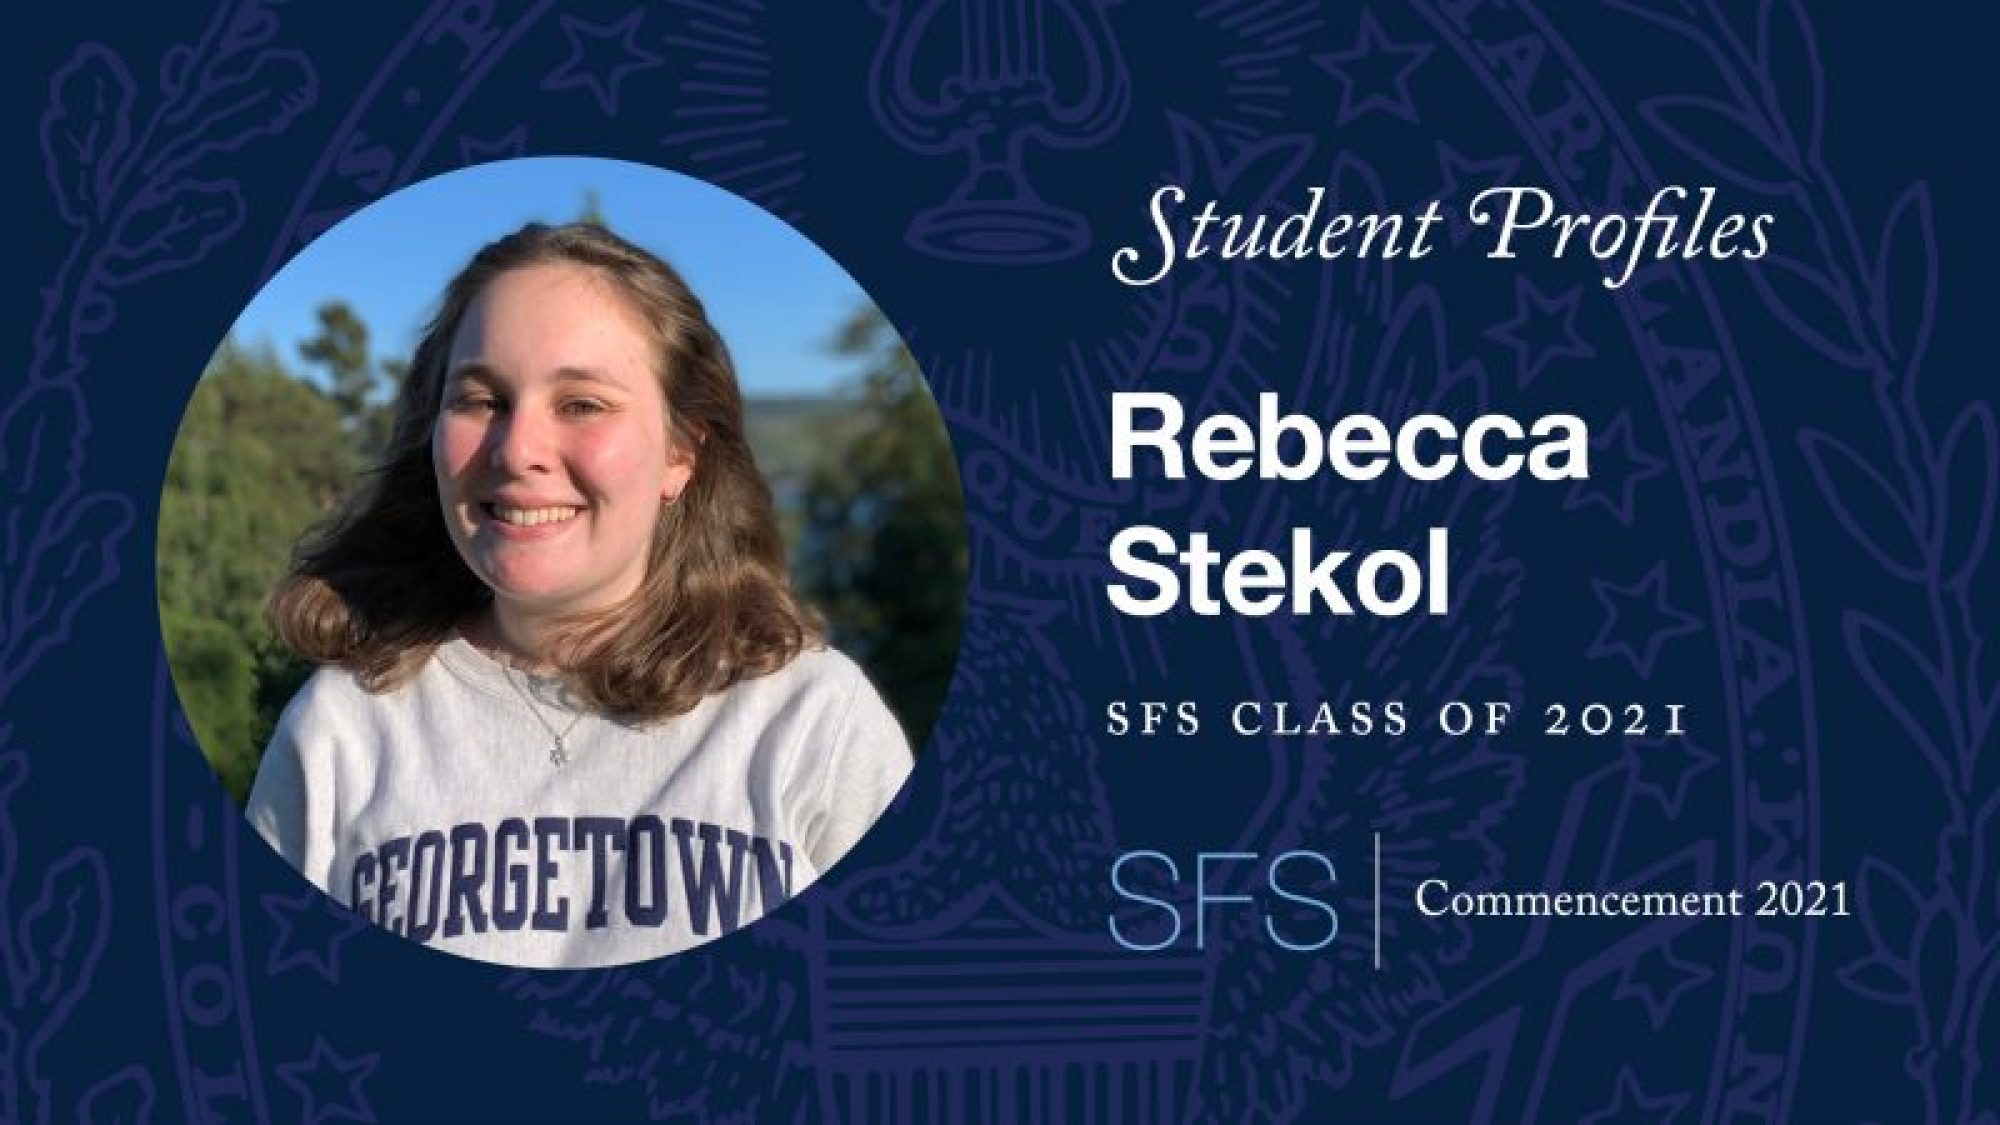 Headshot of Rebecca Stekol with the text